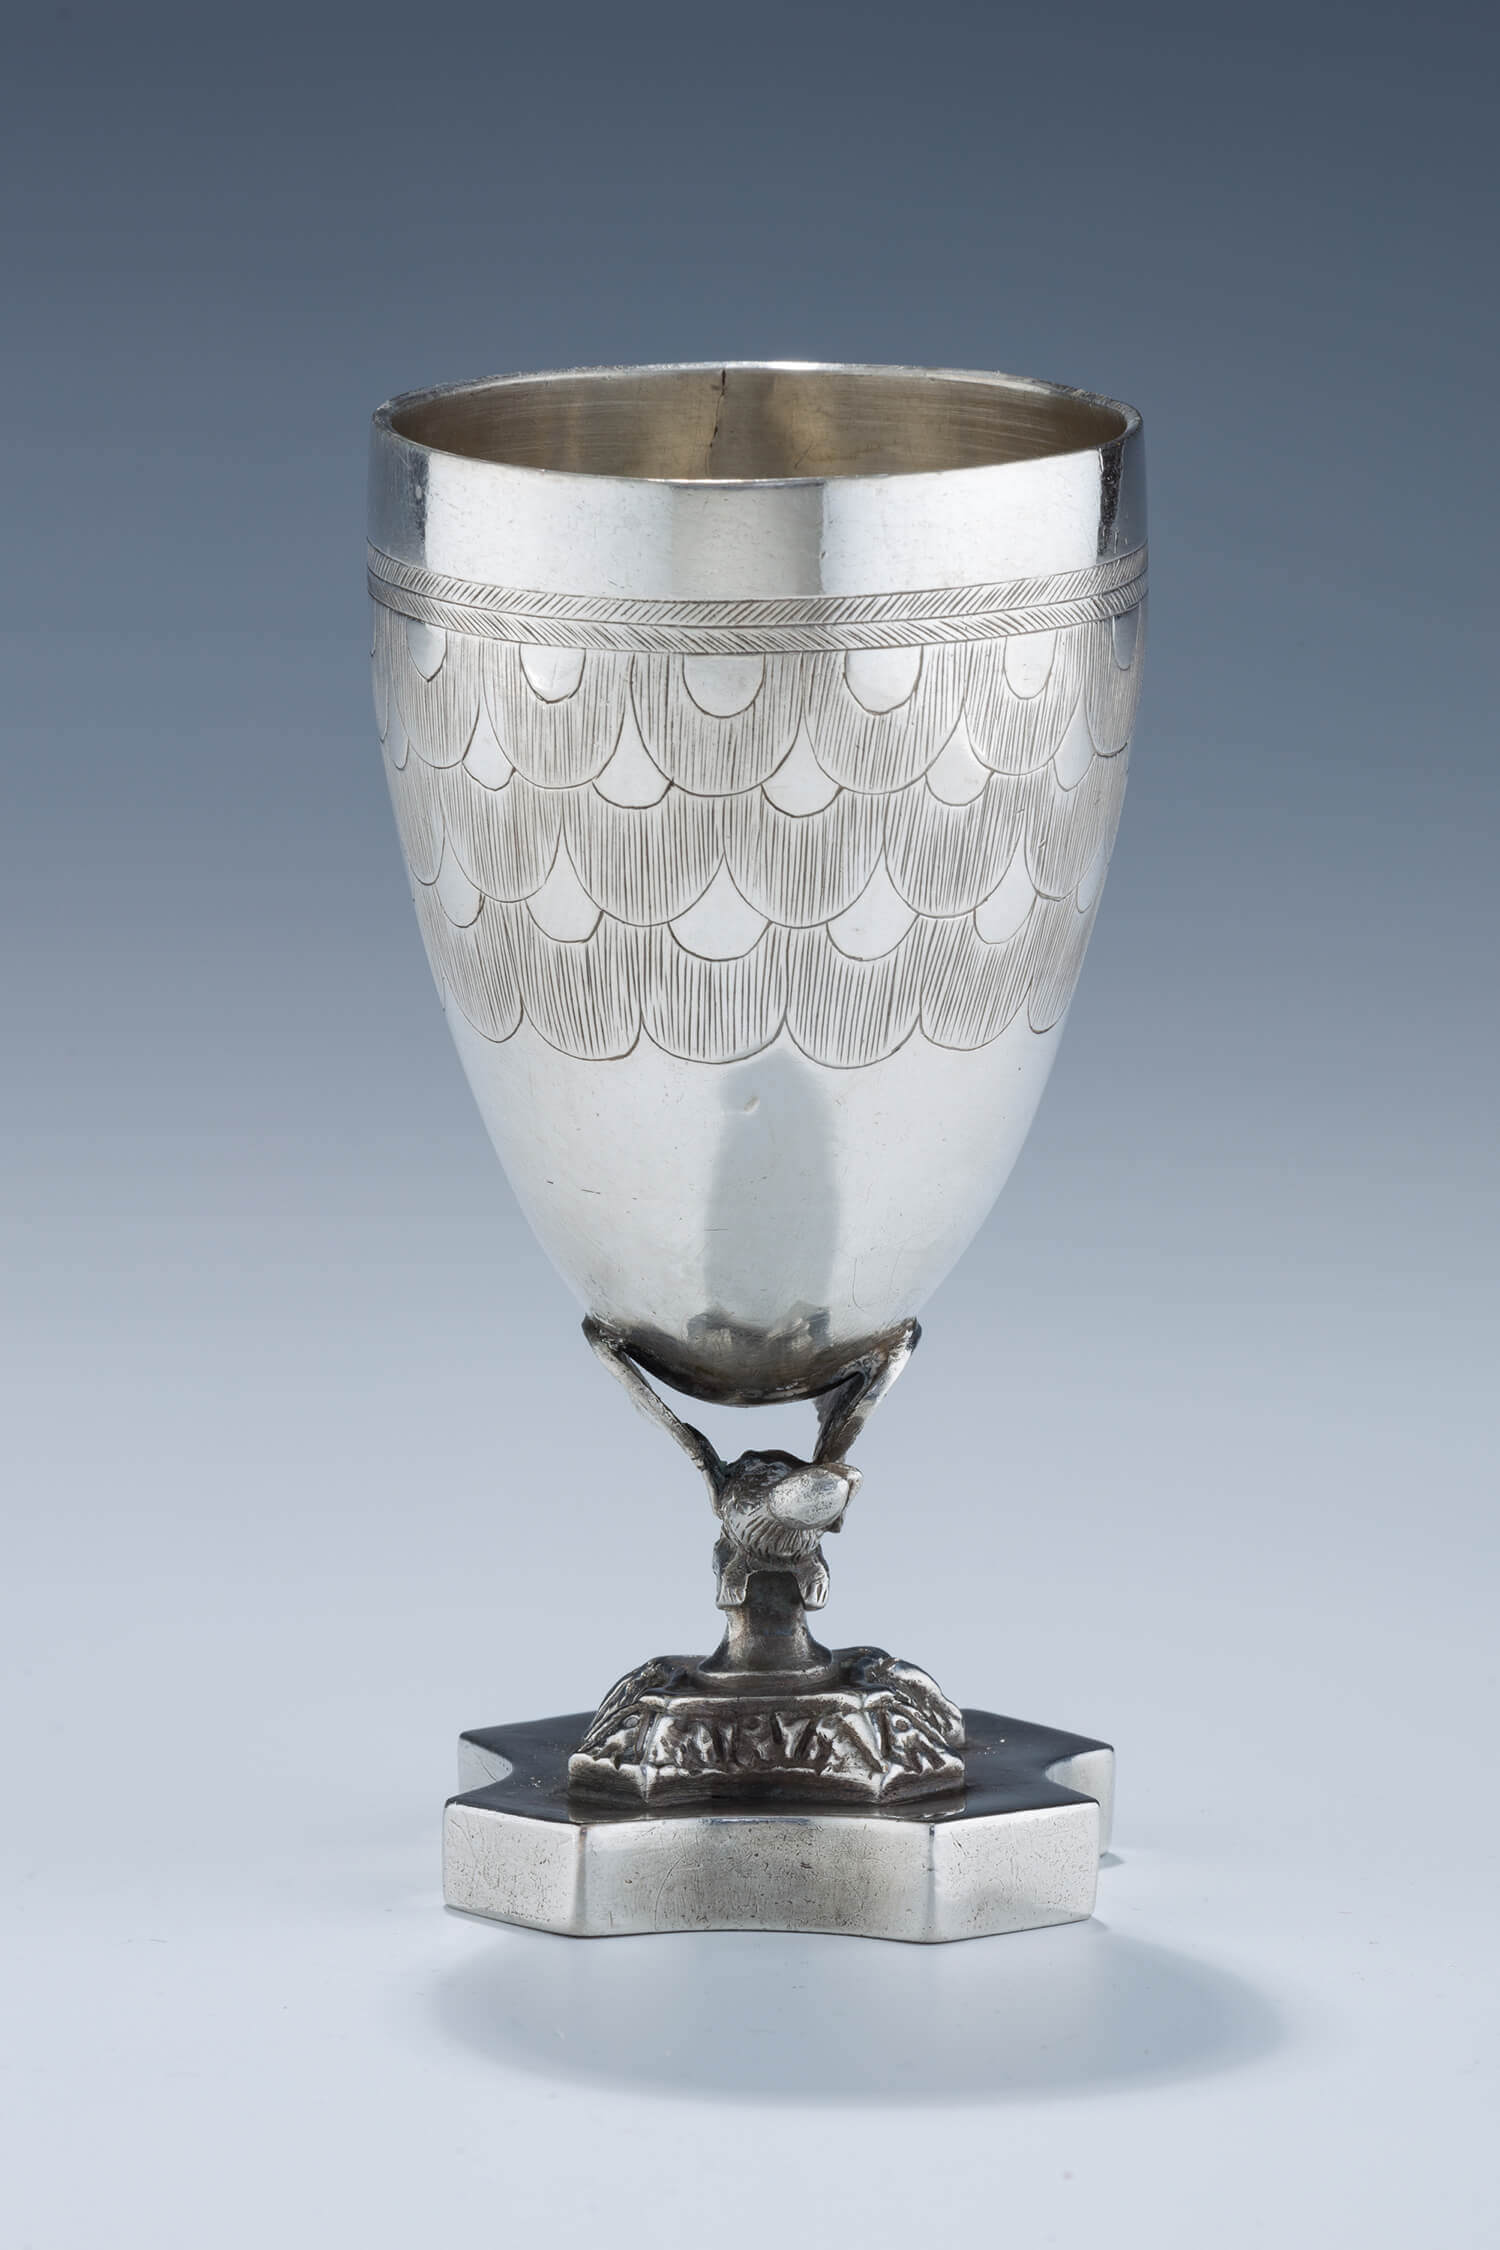 007. AN EARLY SILVER KIDDUSH CUP